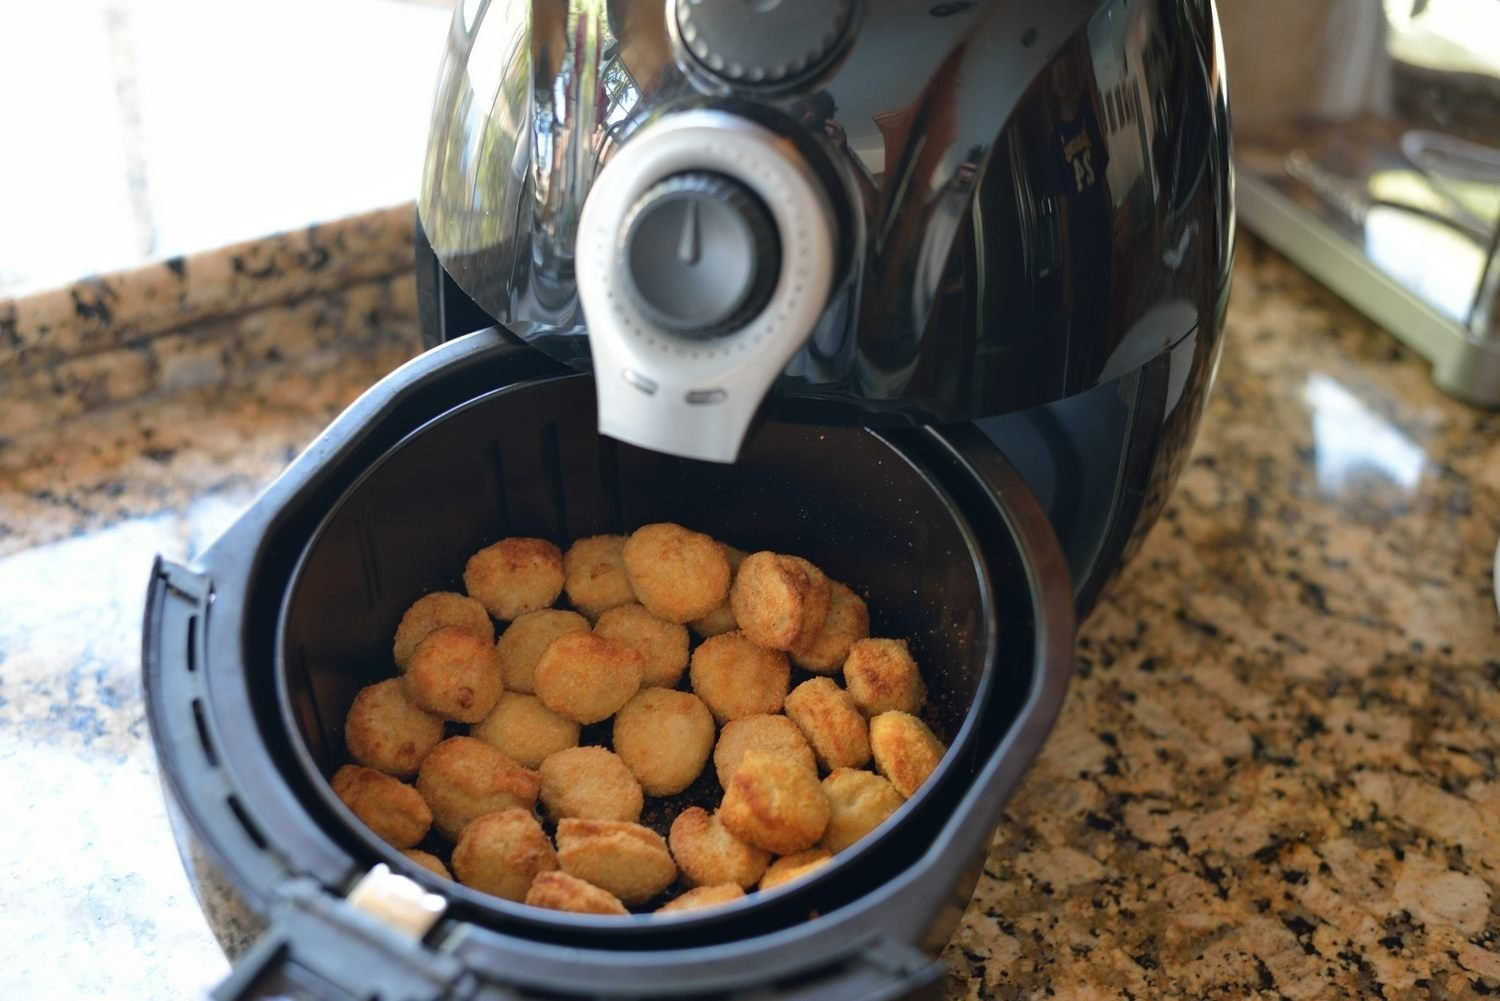 An air fryer with it's pull-out compartment filled with chicken nuggets